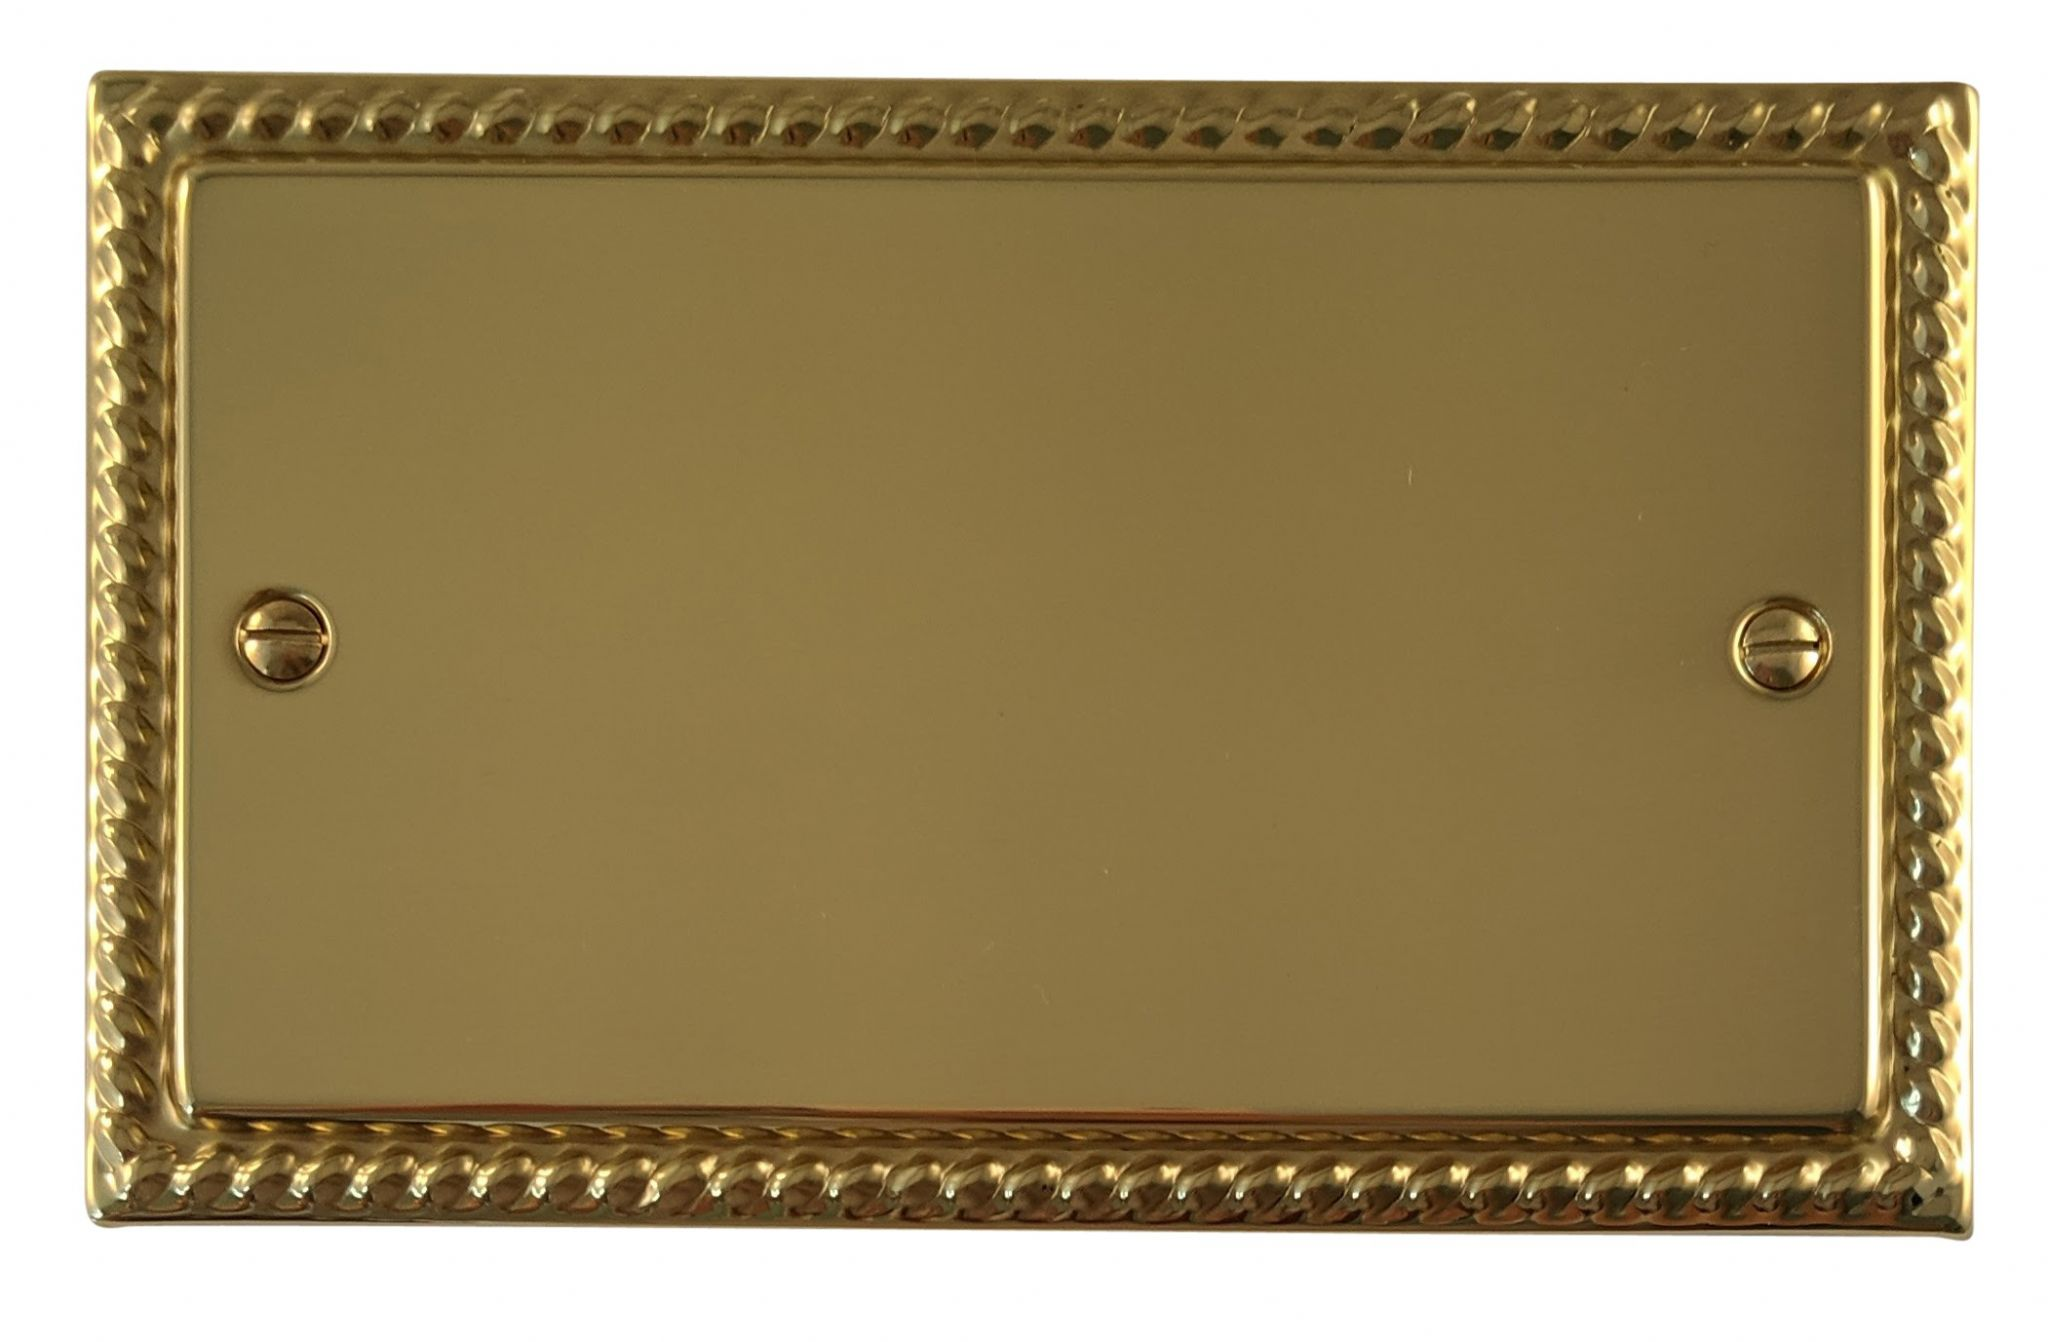 G&H MB32 Monarch Roped Polished Brass 2 Gang Double Blank Plate